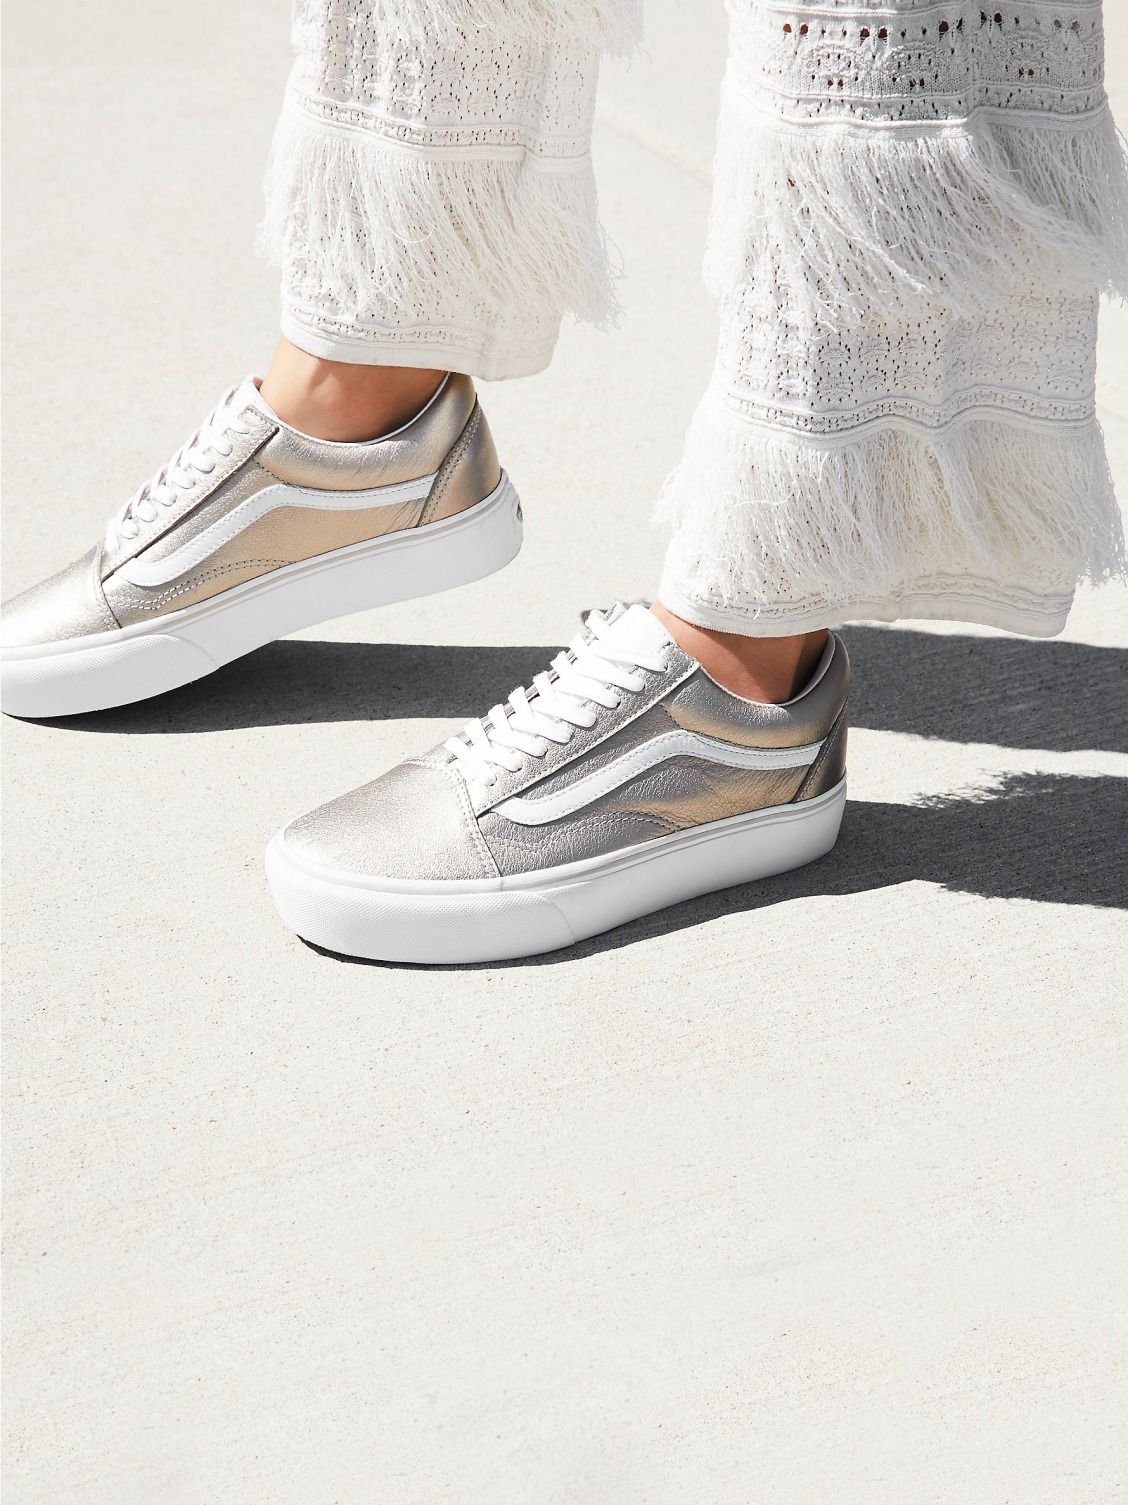 ea65f1aaafb Vans Grey Gold Old Skool Platform Sneaker at Free People Clothing Boutique